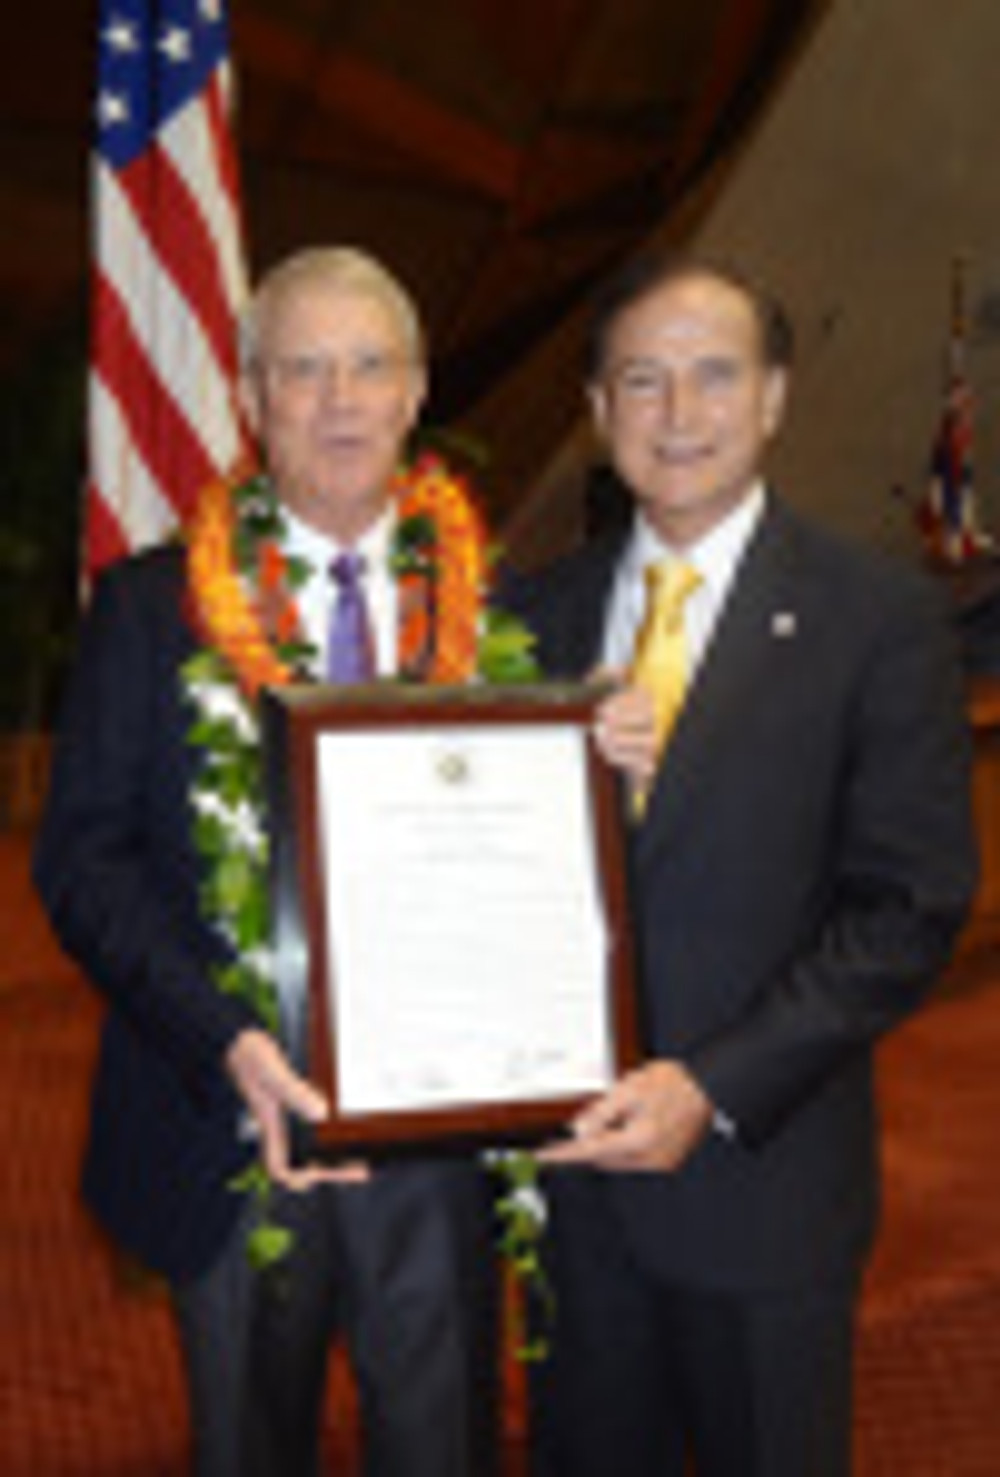 Jim Lally and rep Ward with certificate